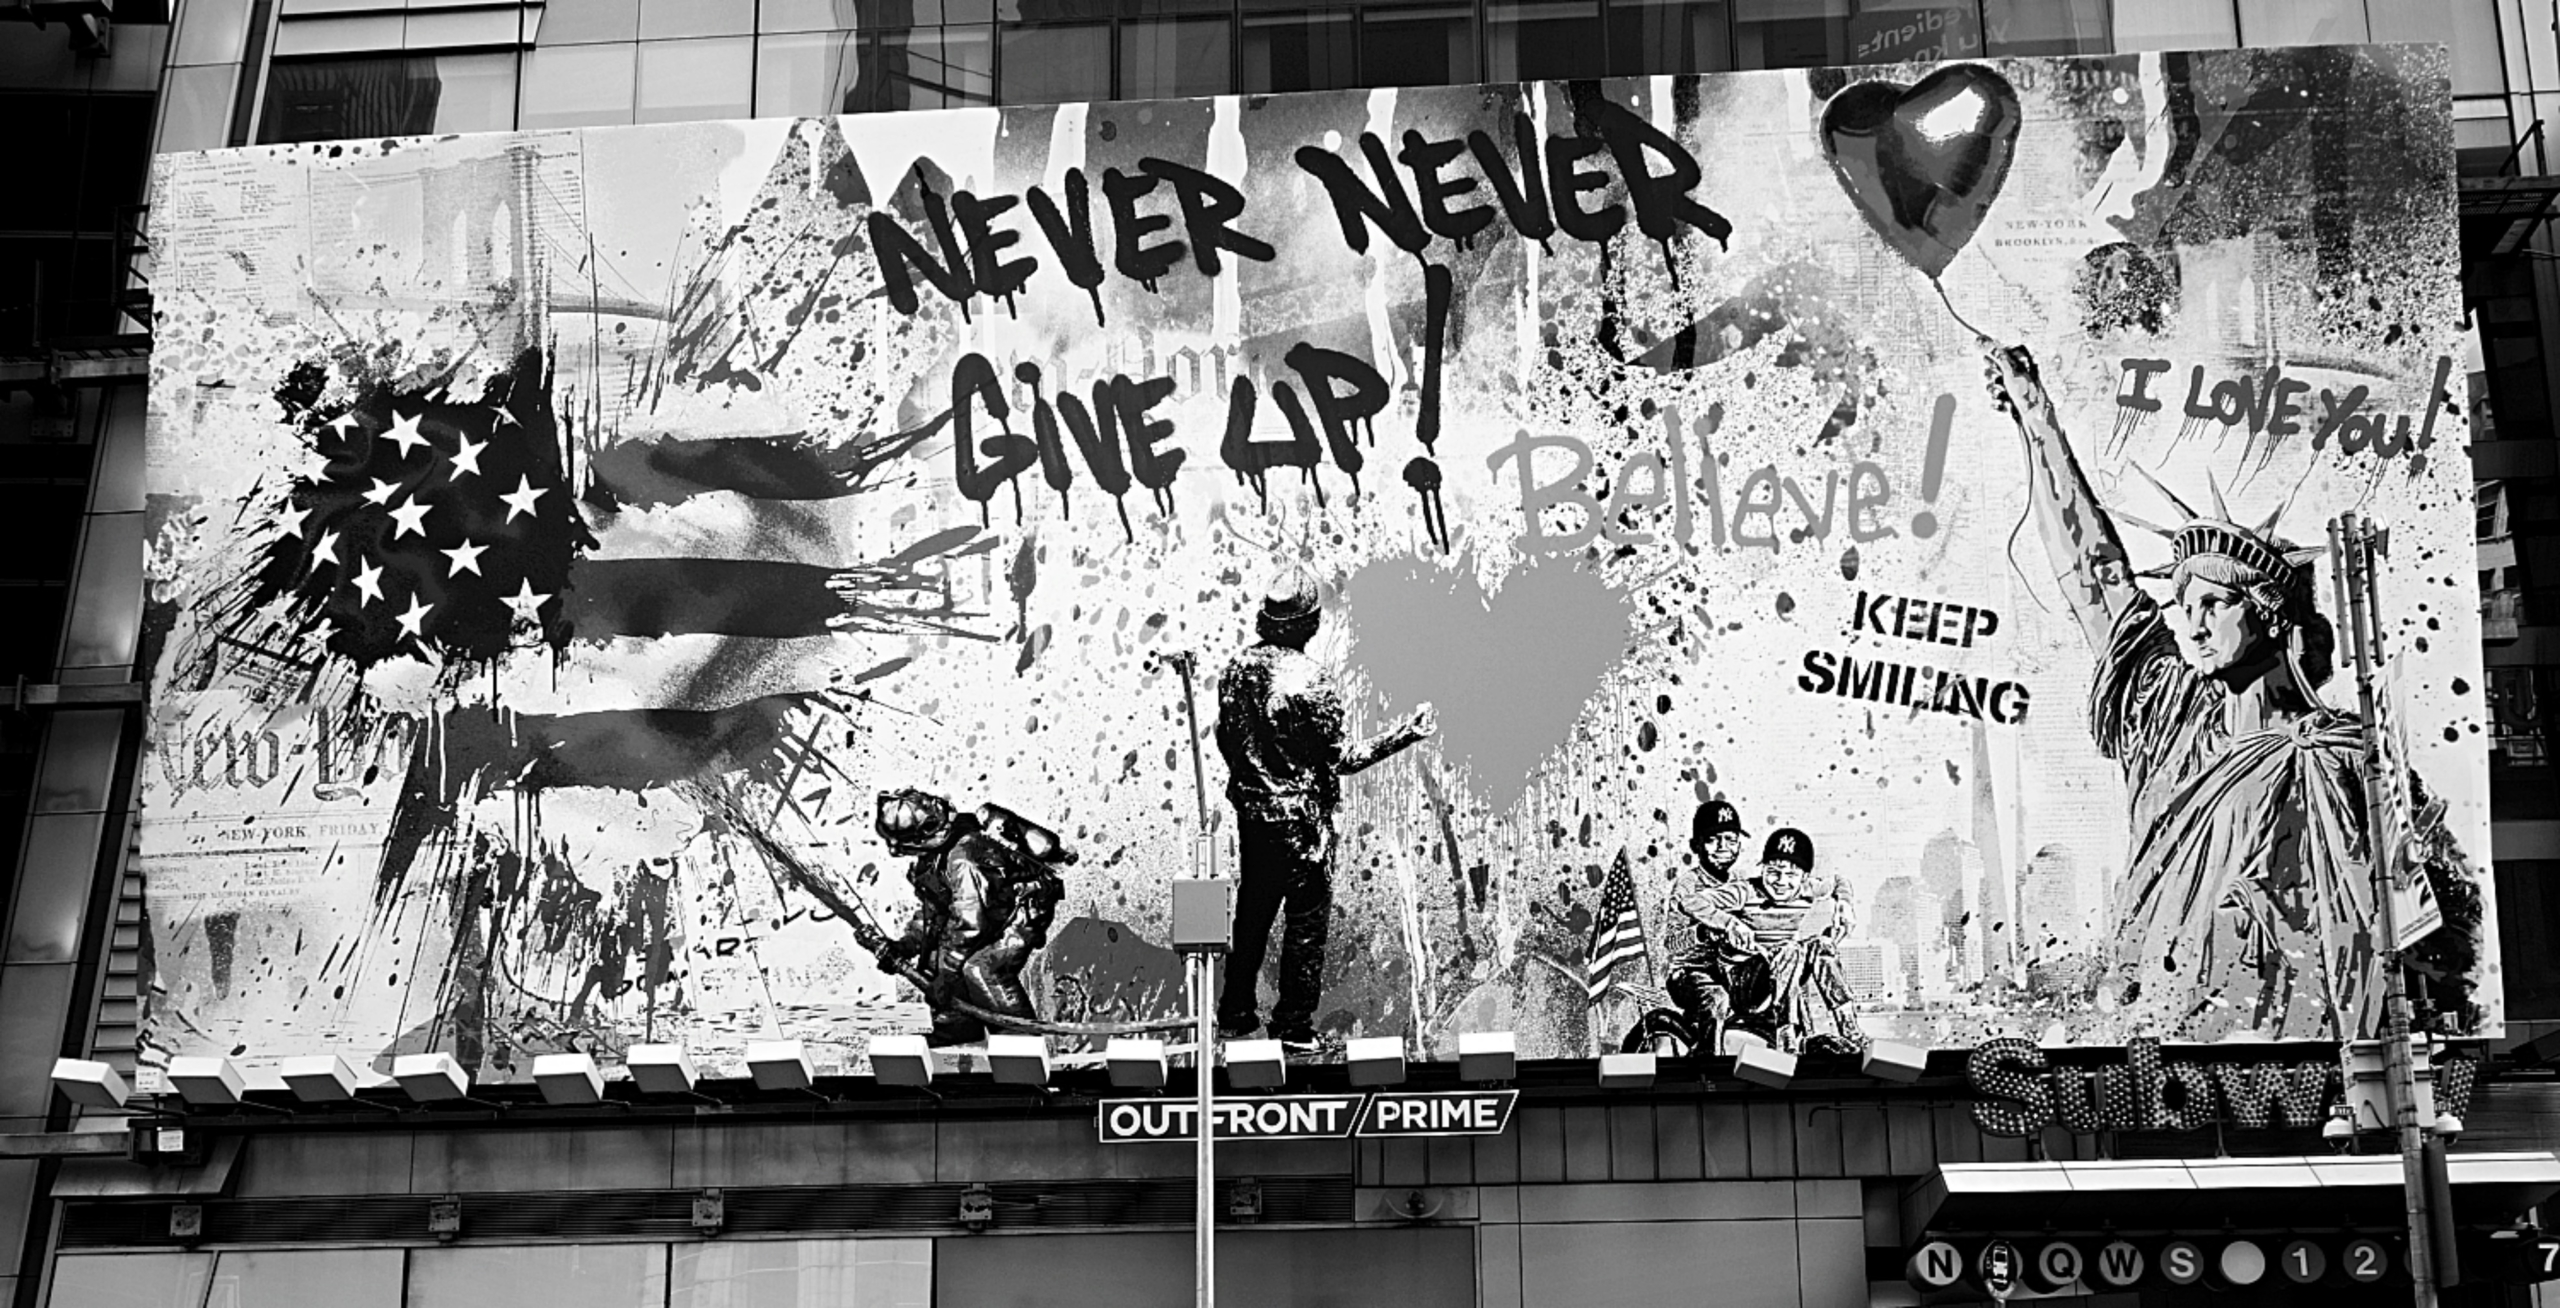 Never Give Up New York City